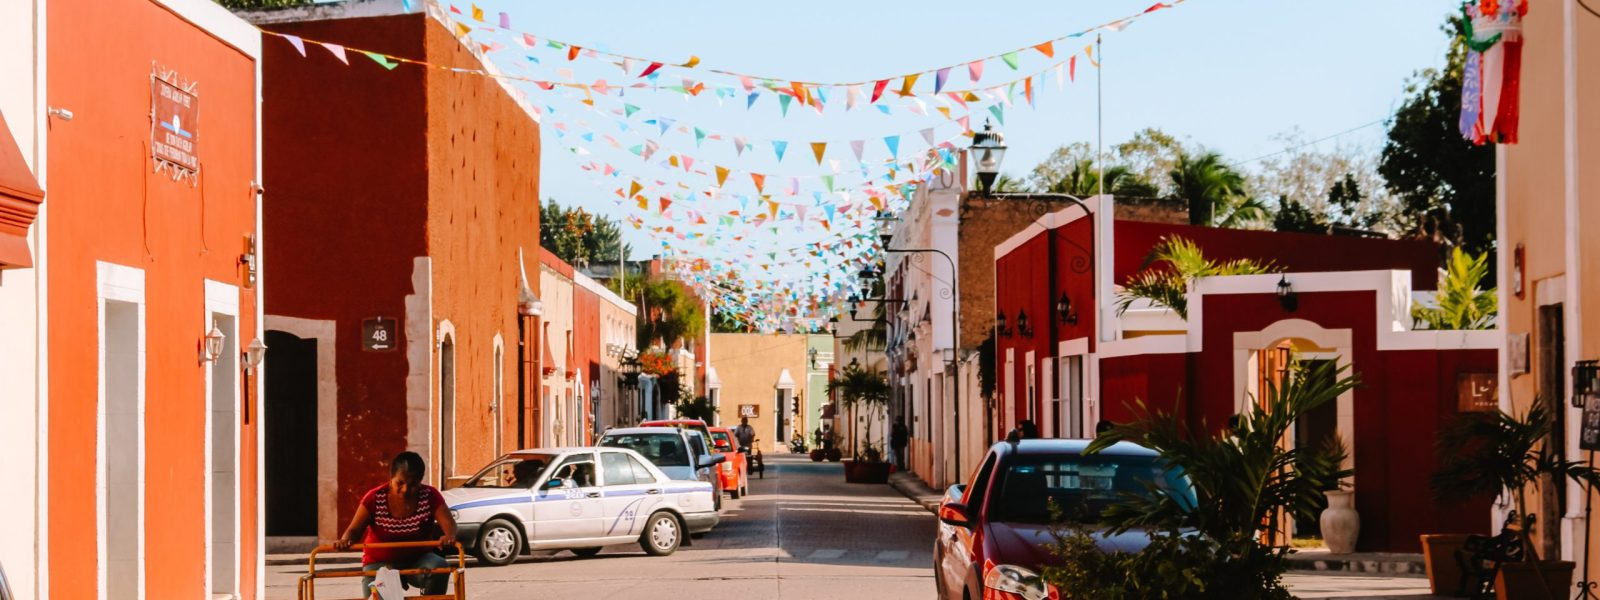 Best things to do in Valladolid, Mexico